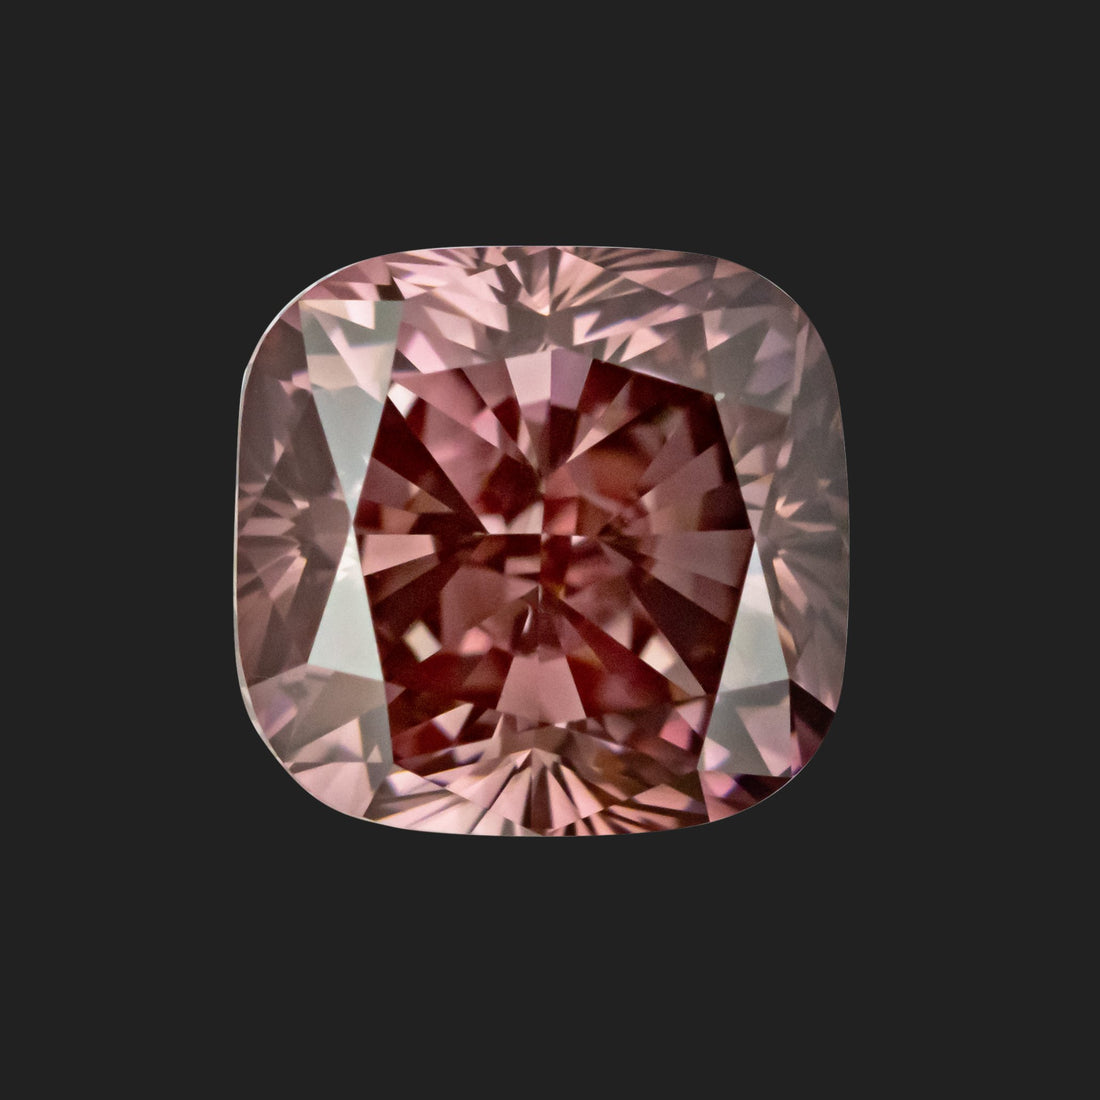 1.36 Carat Cushion Cut Fancy Dark Pink Lab Created Diamond